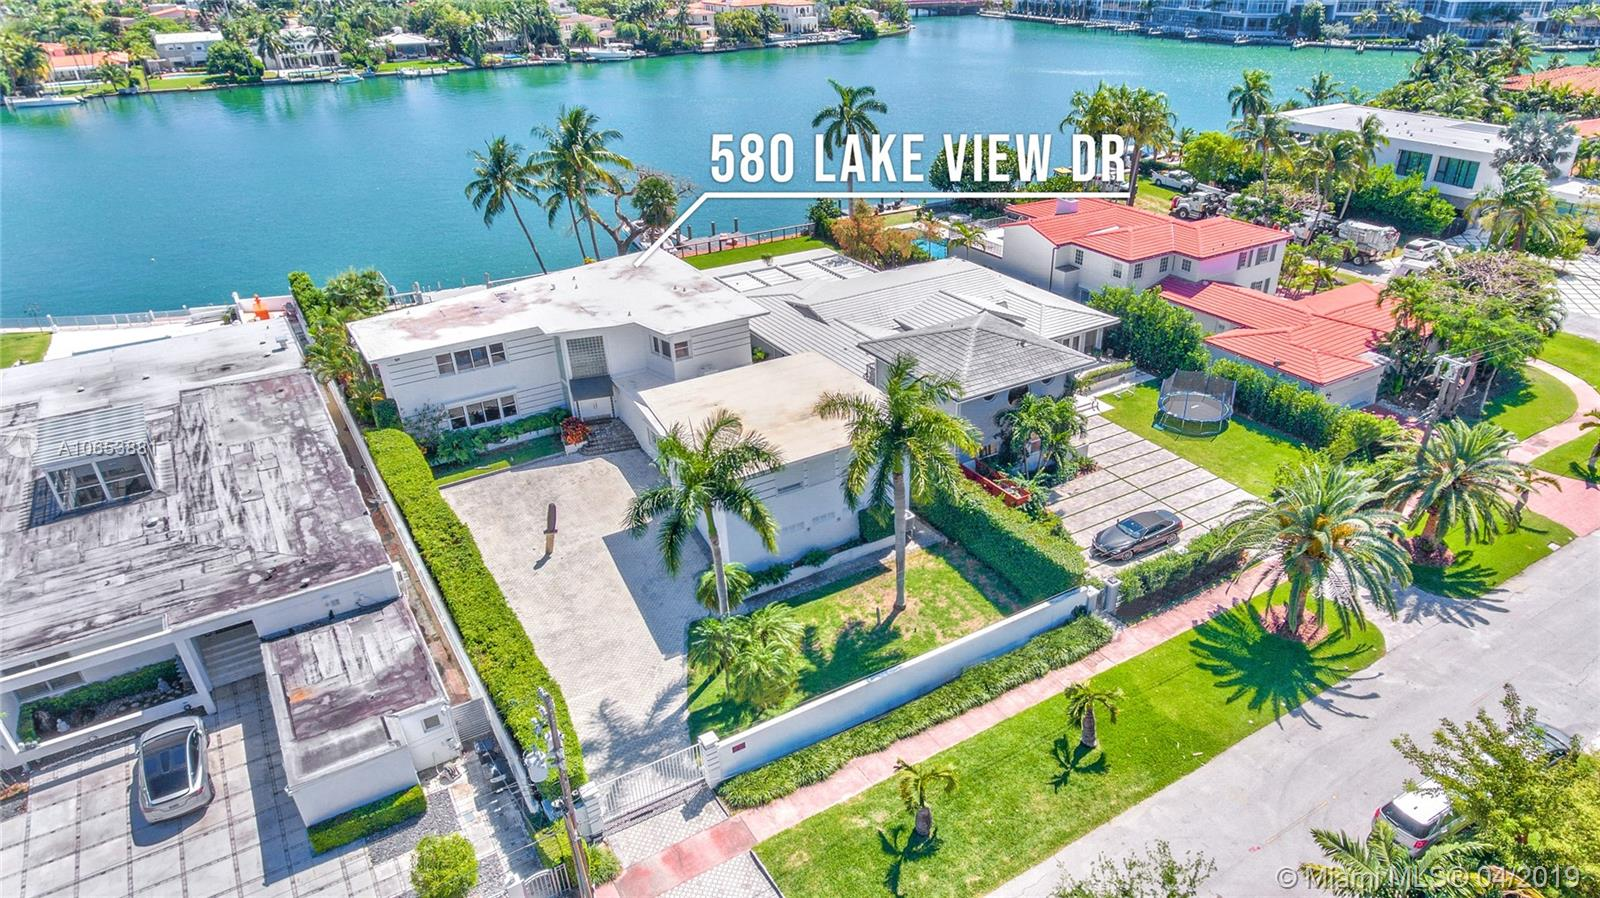 580 Lakeview Dr